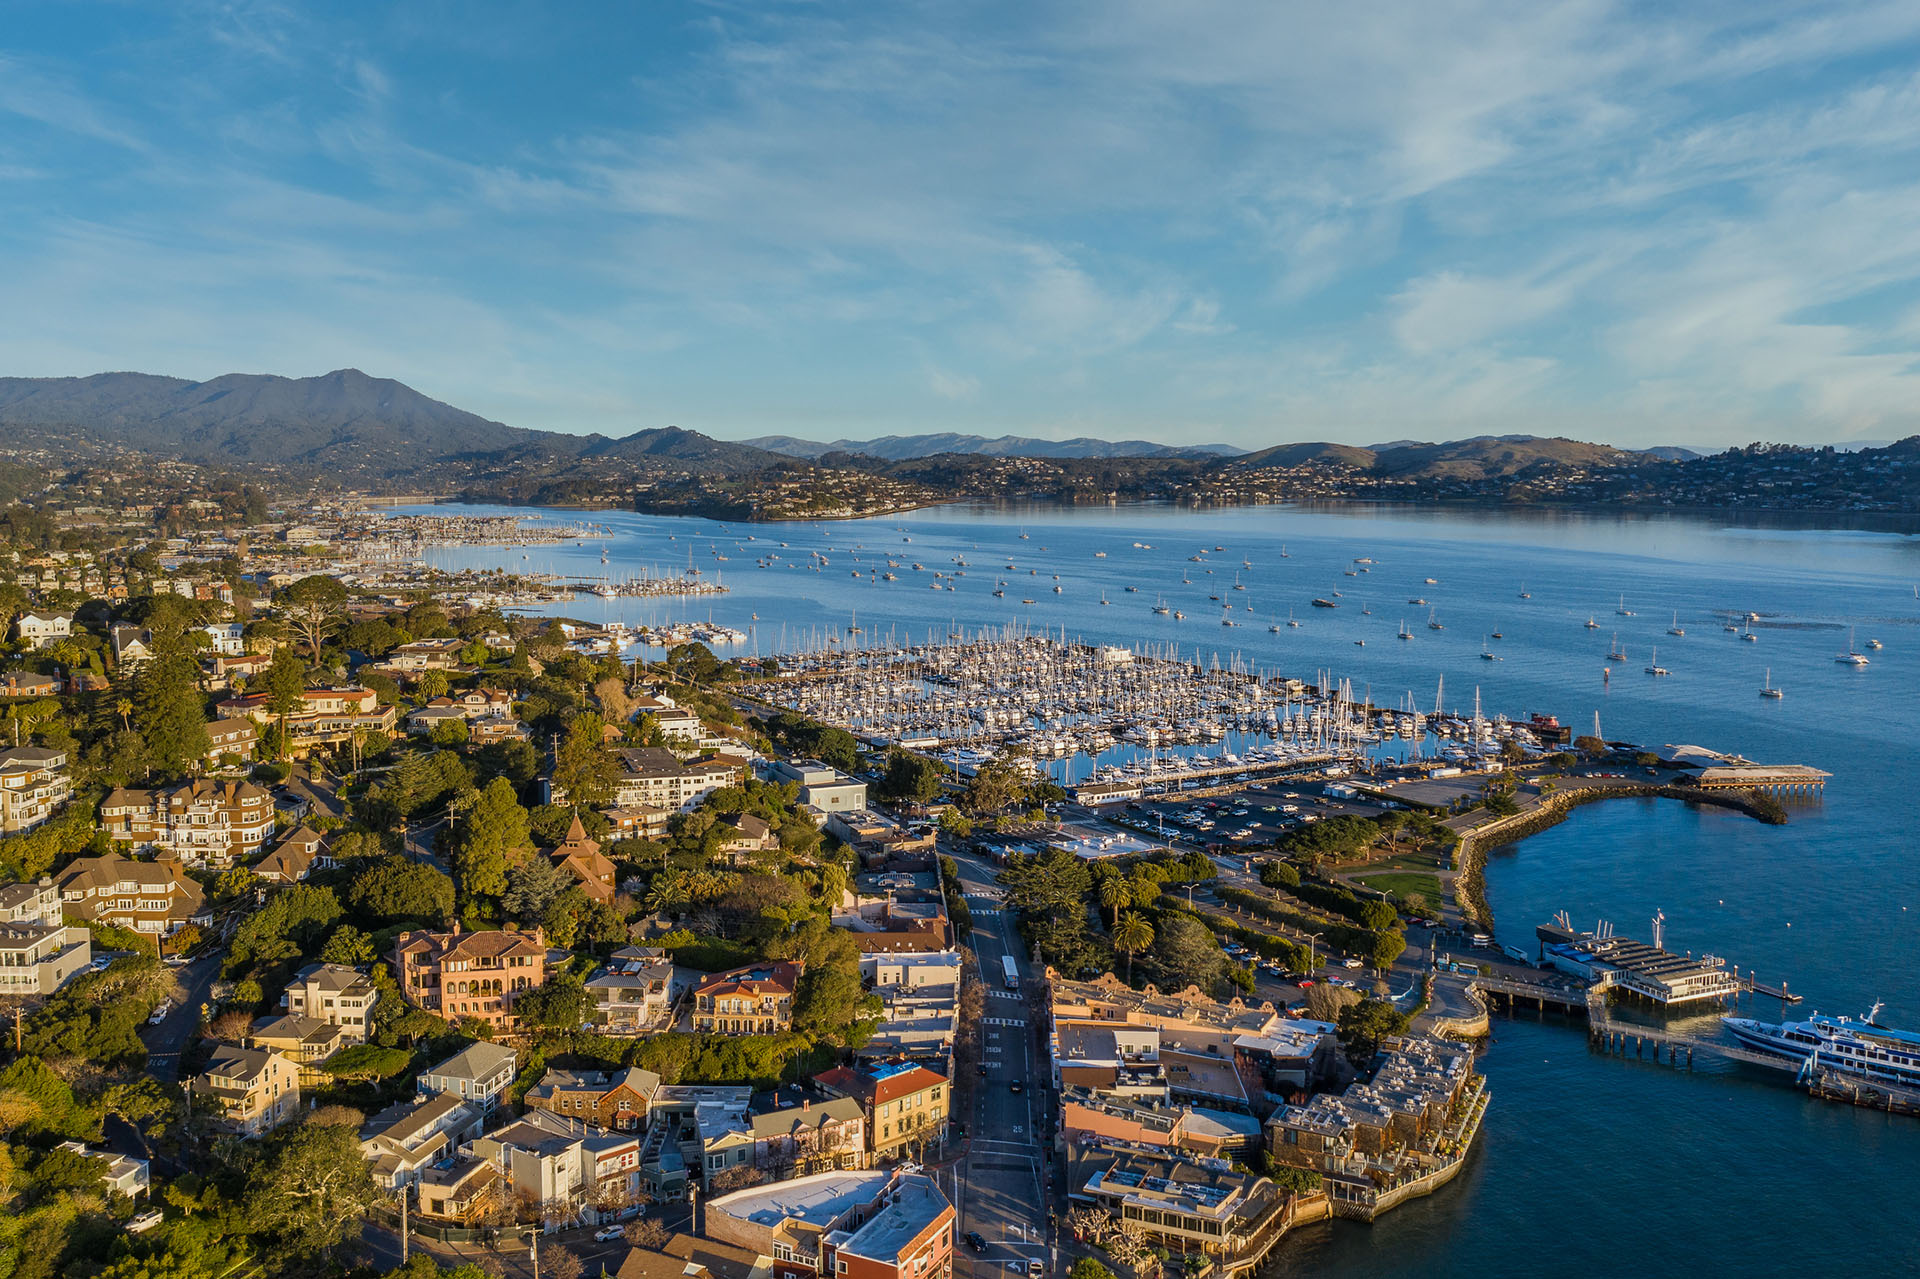 An aerial view of Sausalito with the marina and bay